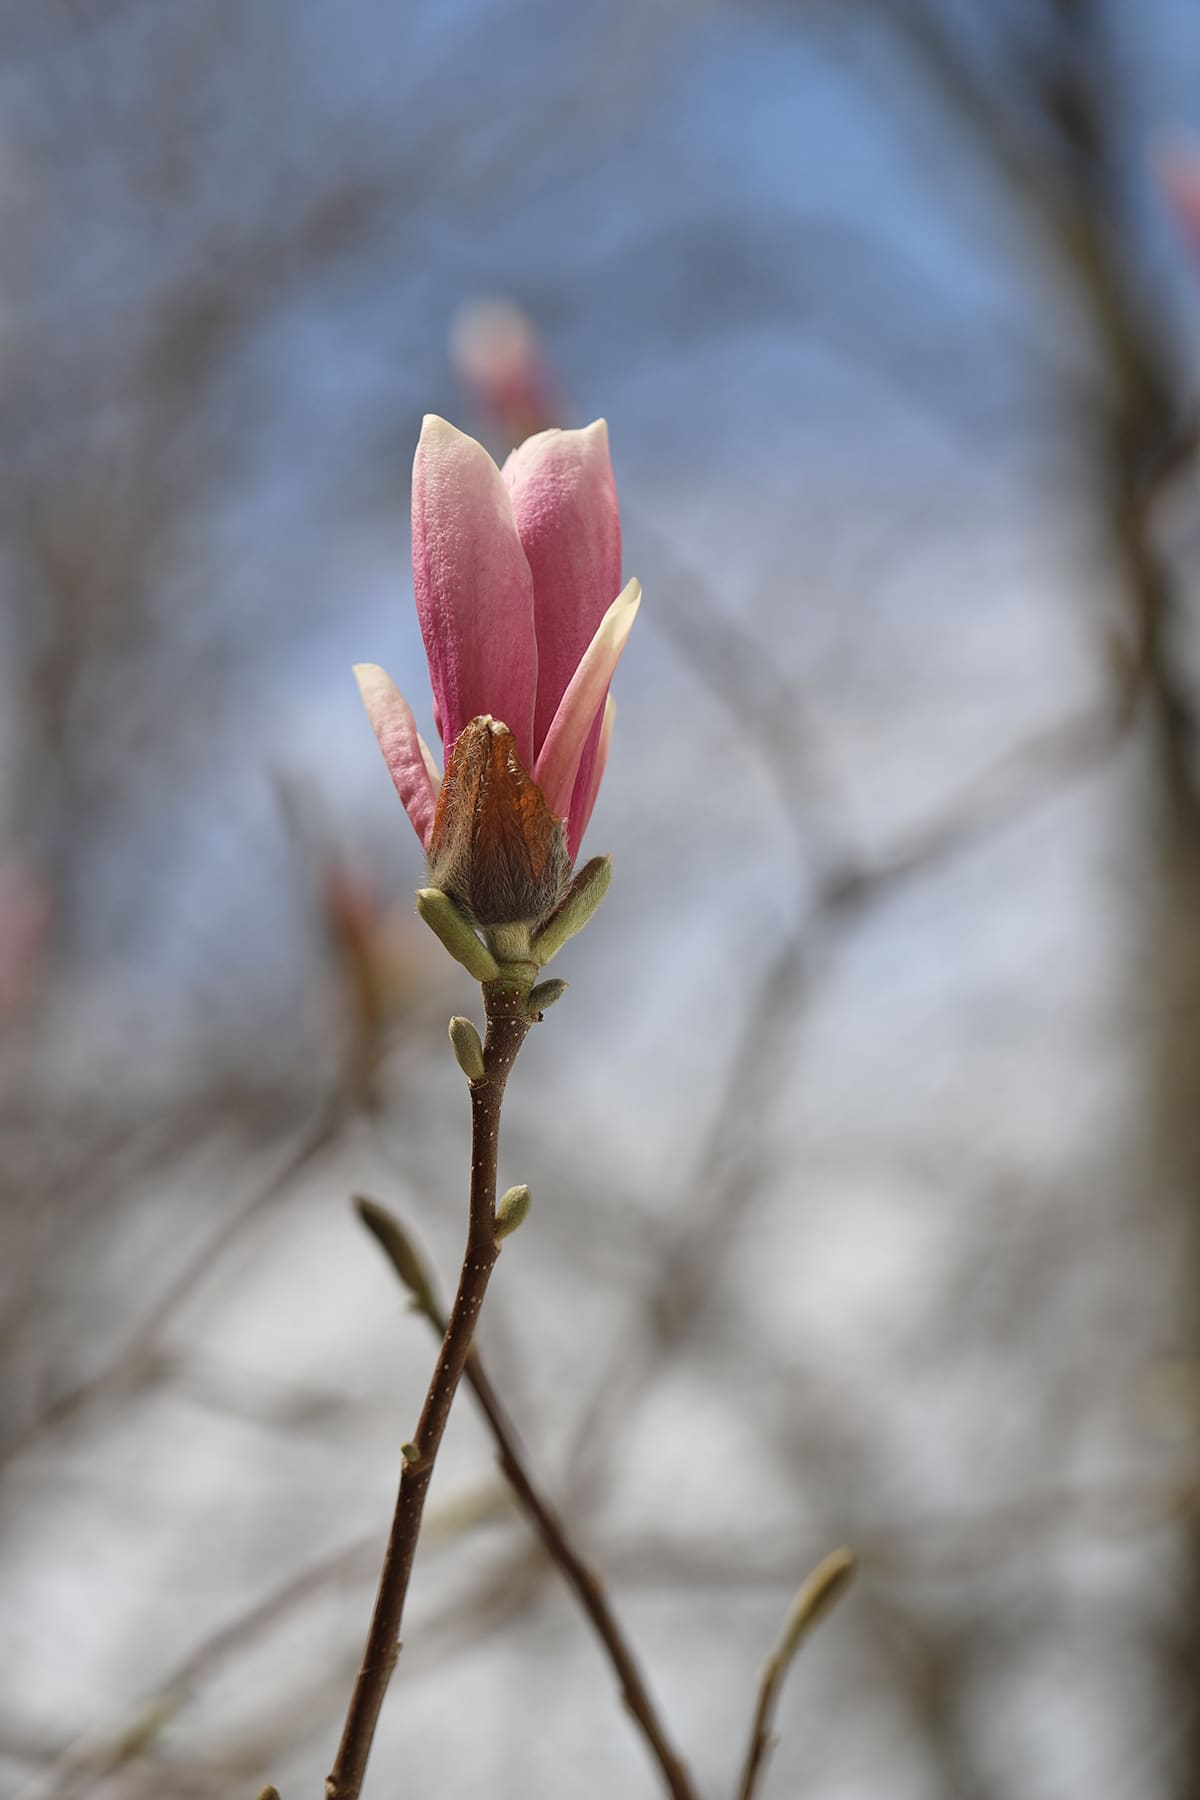 Magnolia blooming on tree.